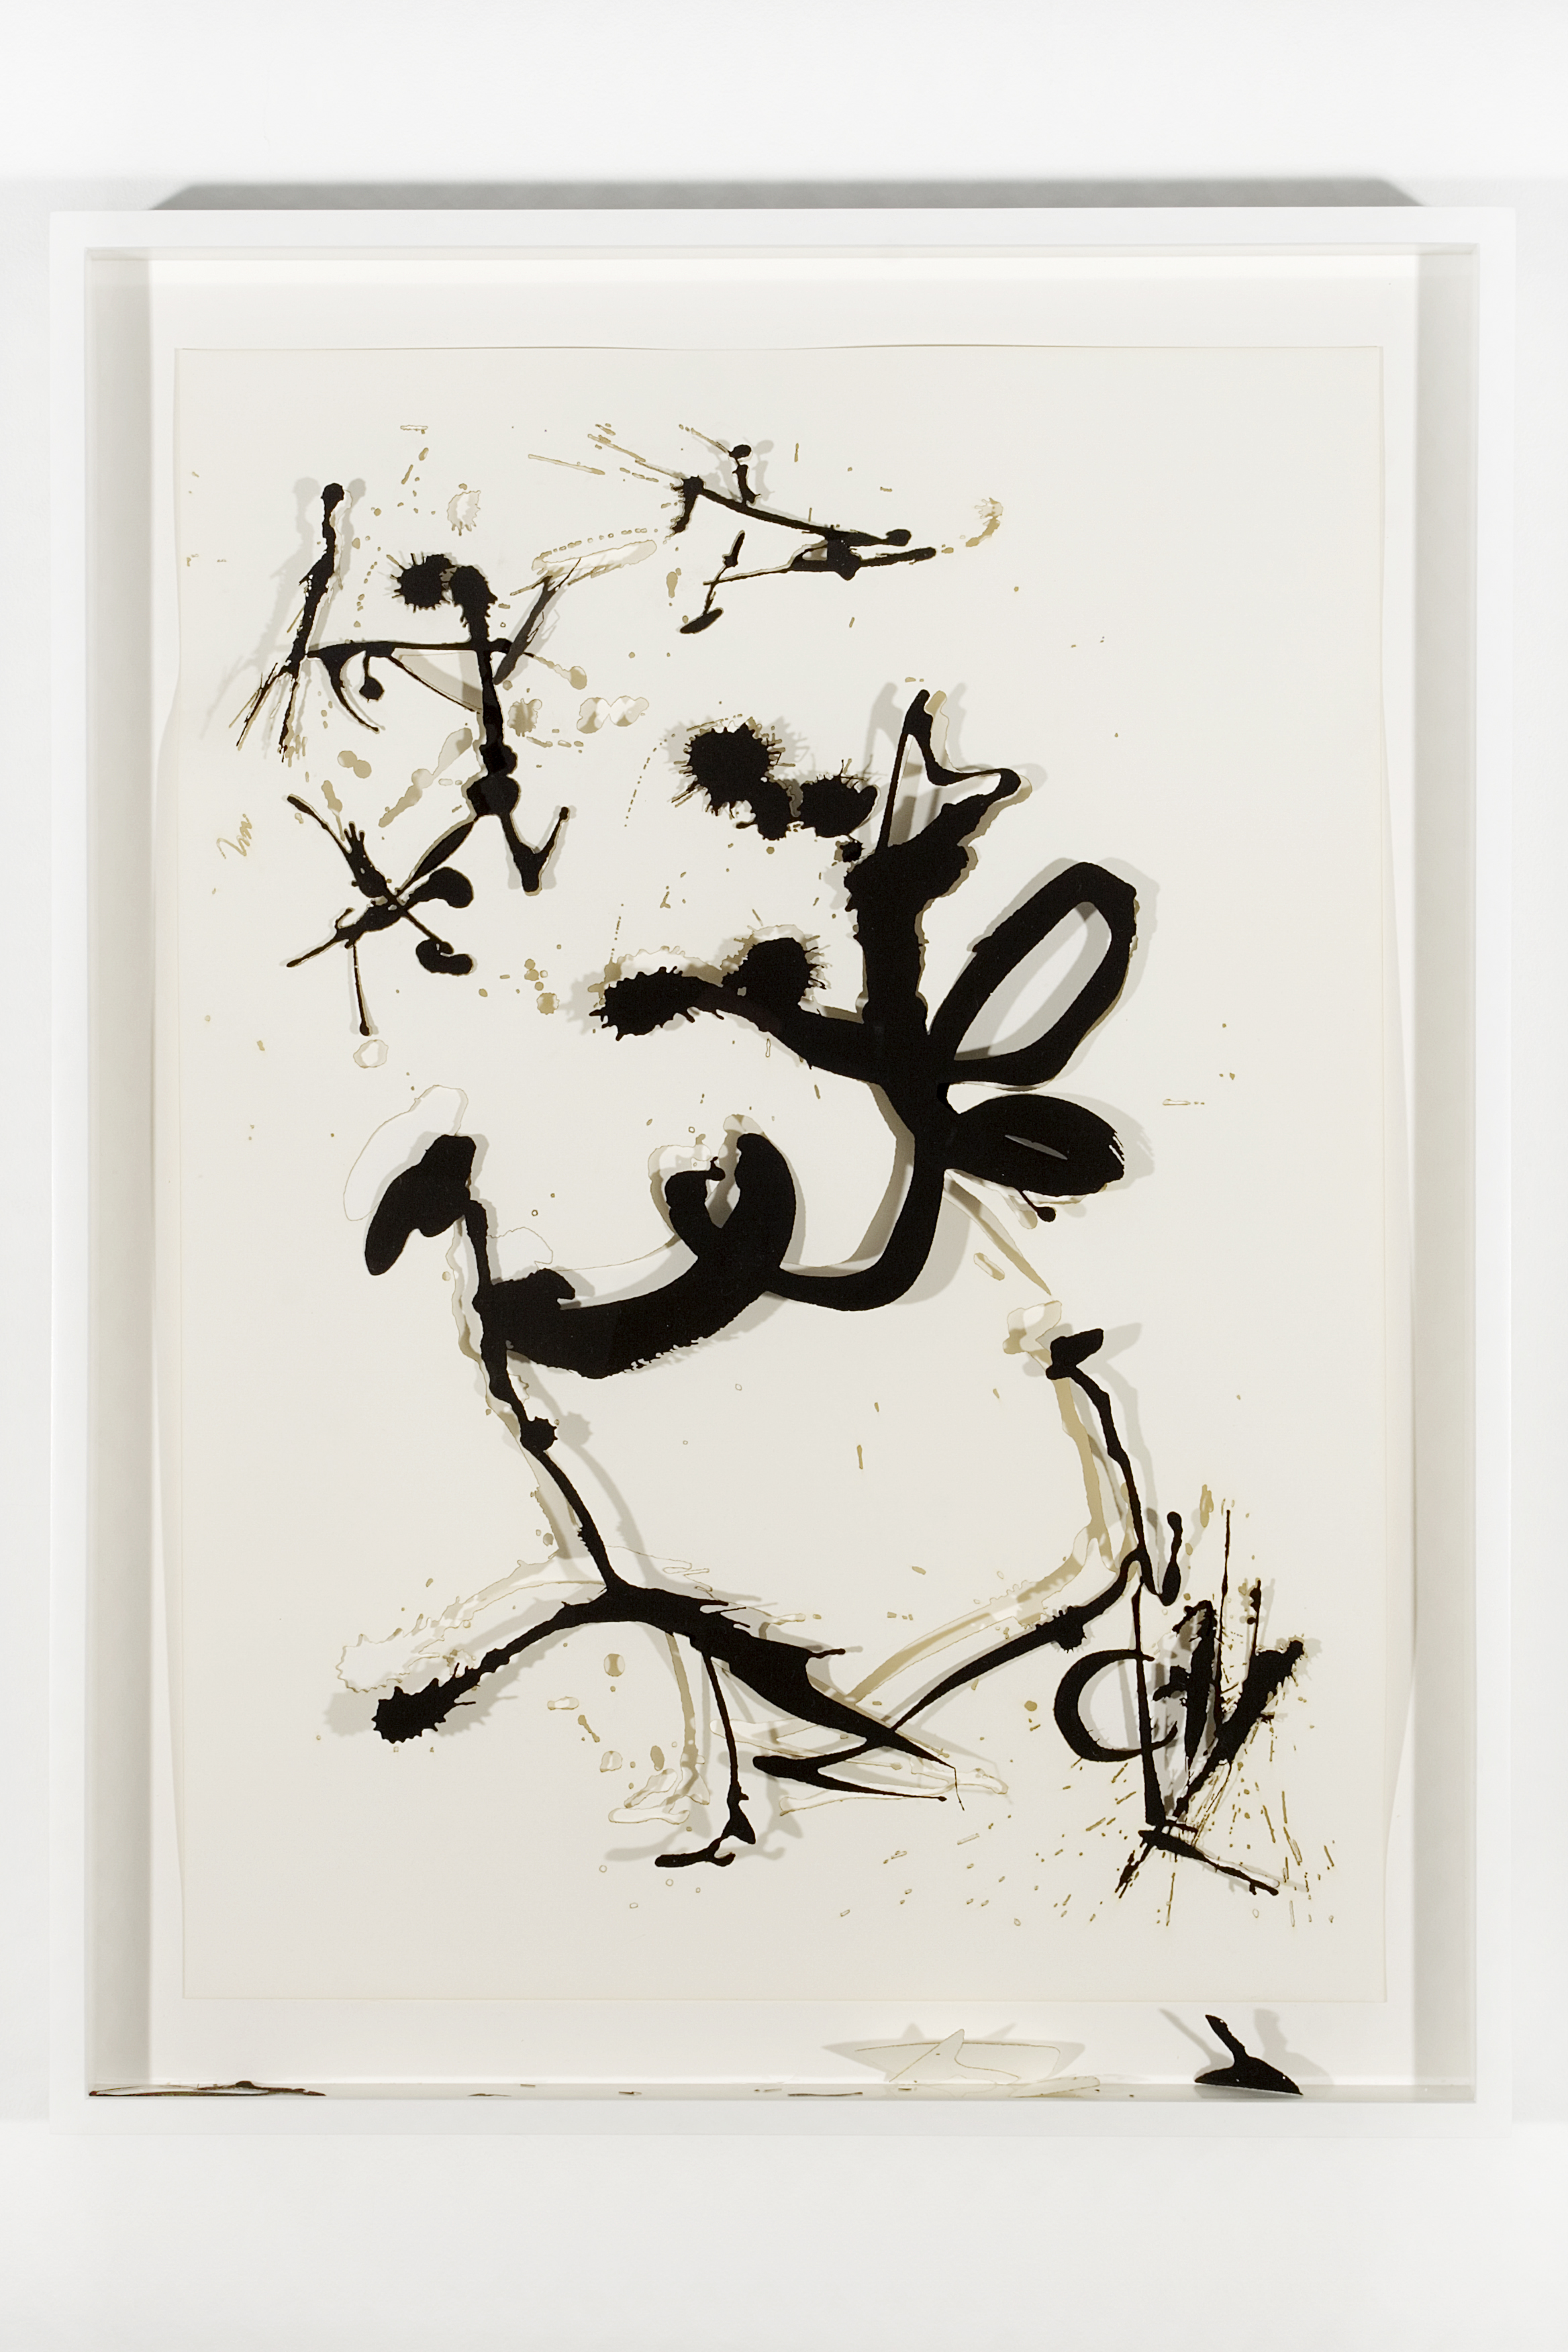 "Collapsed Drawing: ""Unknown Title"" (Jackson Pollock), 2007 laser-cut paper and laser-cut archival digital print mounted on museum board 79,5 x 60,4 cm - 31 1/4 x 23 3/4 inches (framed)"